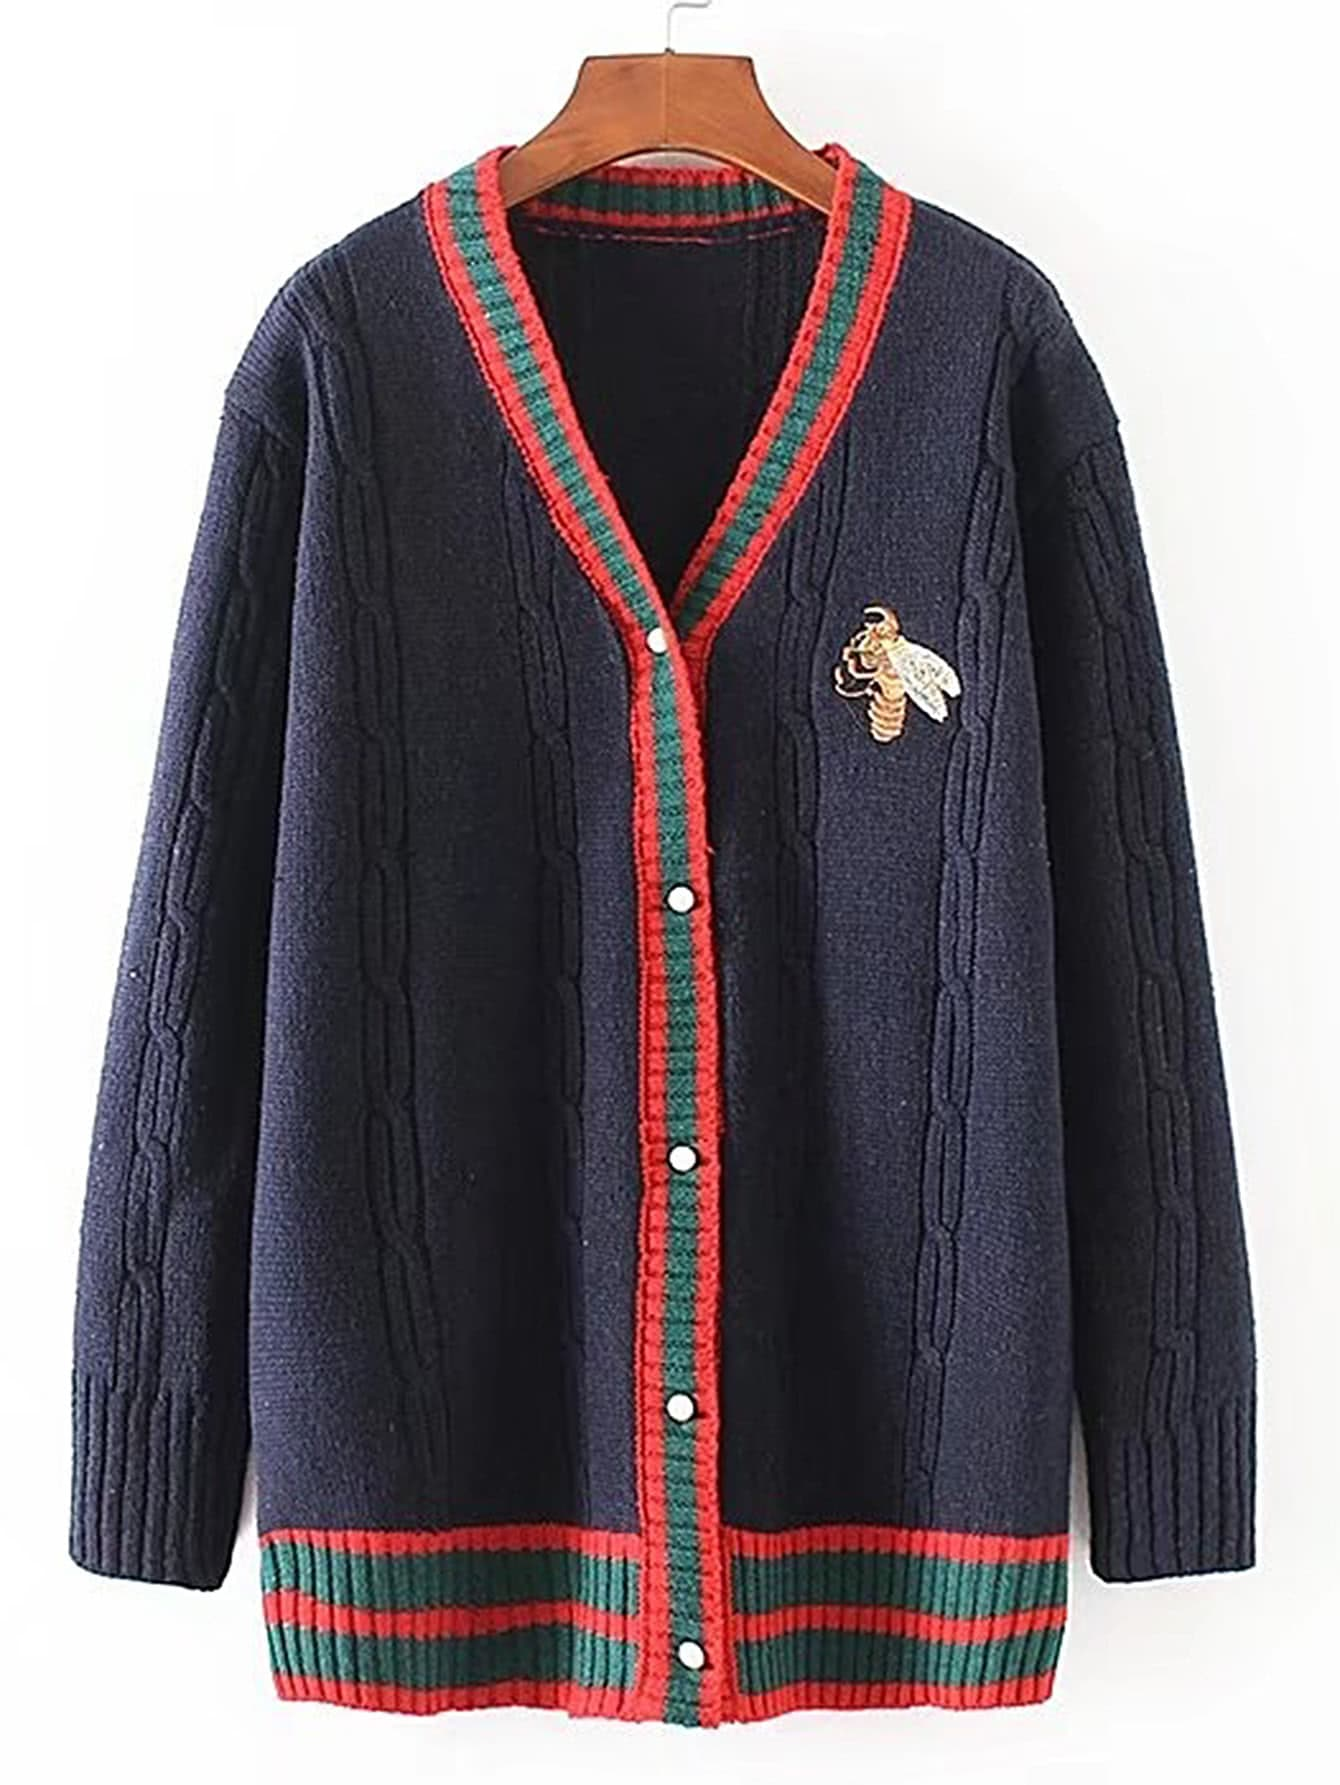 Contrast Binding Bee Embroidery Sweater Coat sweater170719201